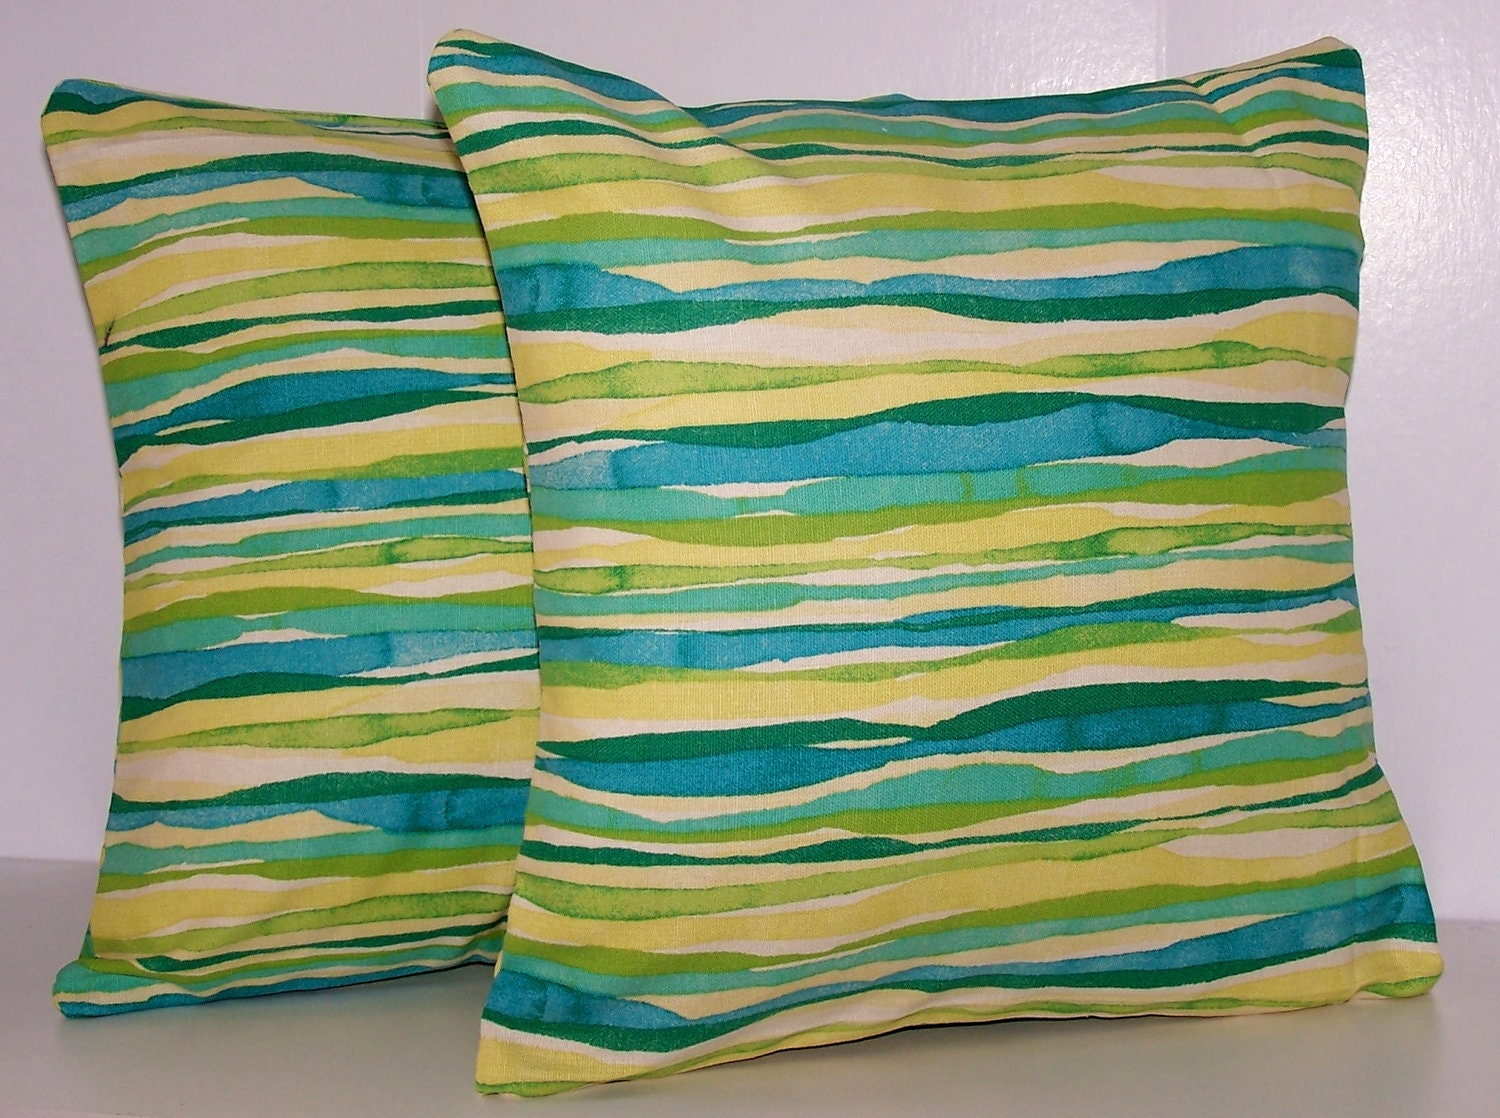 PILLOW COVER . Throw Pillow. Handmade by Cathyscustompillows